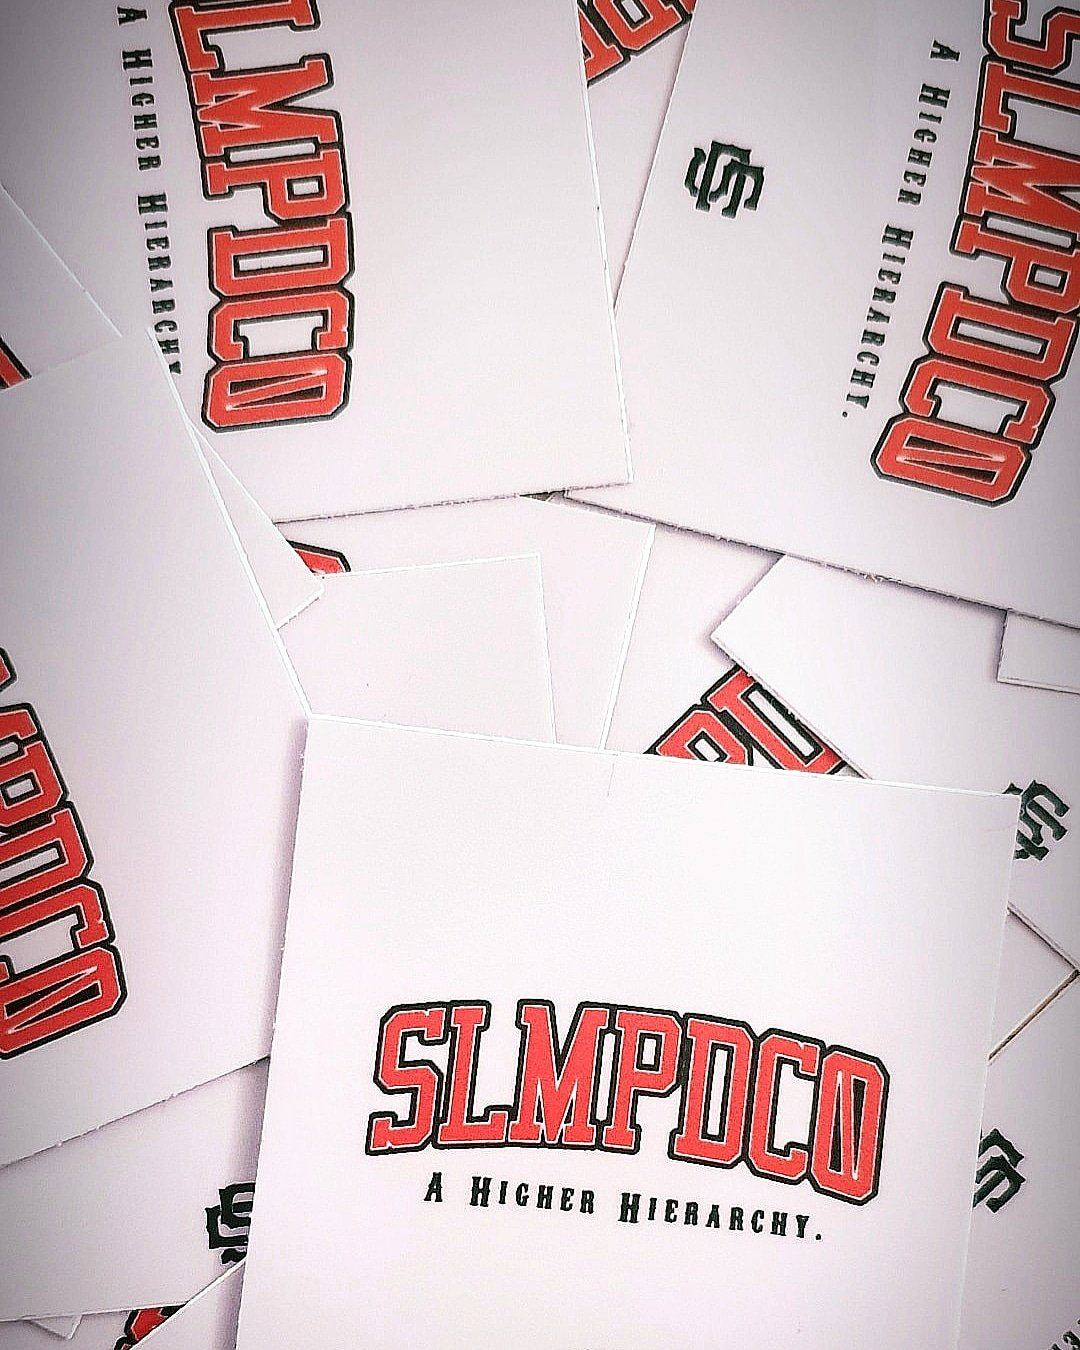 SLMPD DOMINO T SHIRT FROM STREETWEAR BRAND SLMPD CO STREET WEAR GARMENT CLOTHING APPAREL SLMPDCO BLACK TEE DIGBETH BIRMINGHAM STICKERS SLAPS CUSTOM